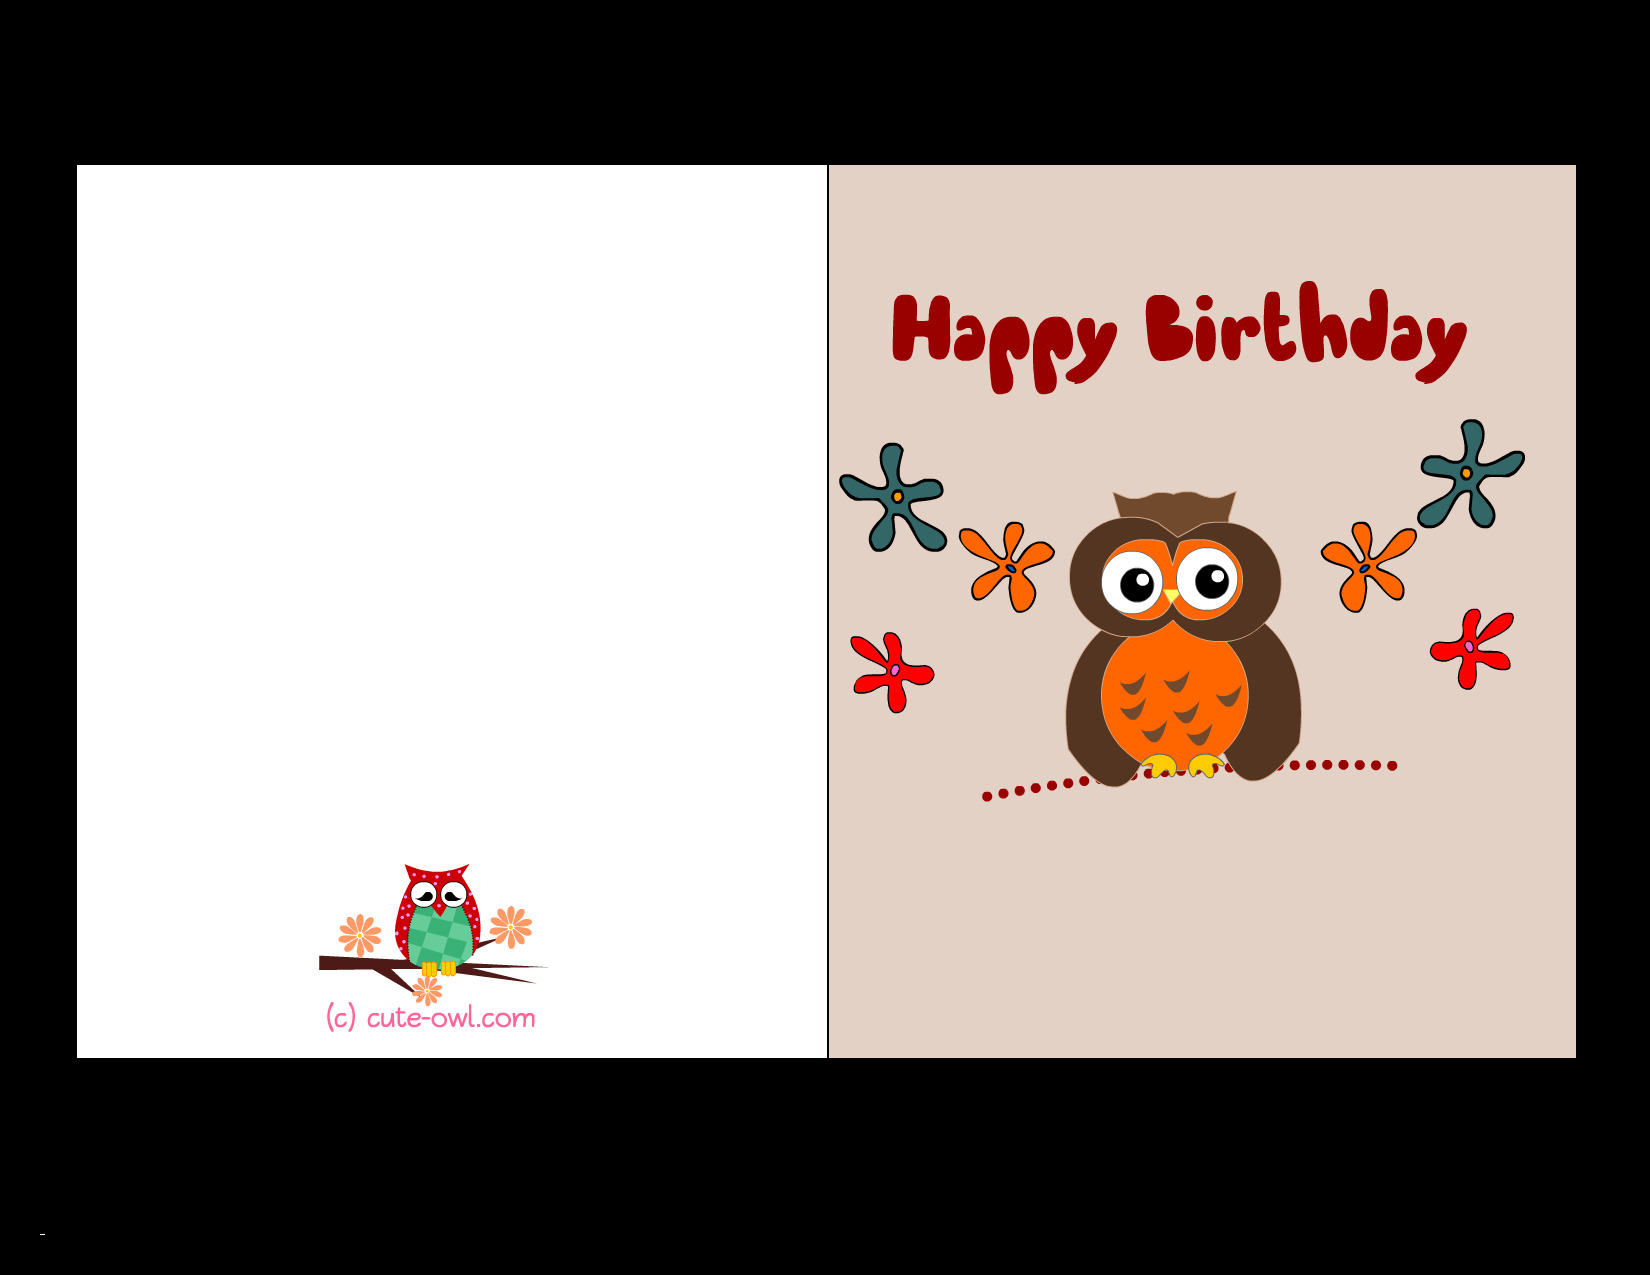 free printable birthday cards for your best friend ; happy-birthday-card-printable-awesome-printable-birthday-cards-for-wife-my-free-printable-cards-of-happy-birthday-card-printable